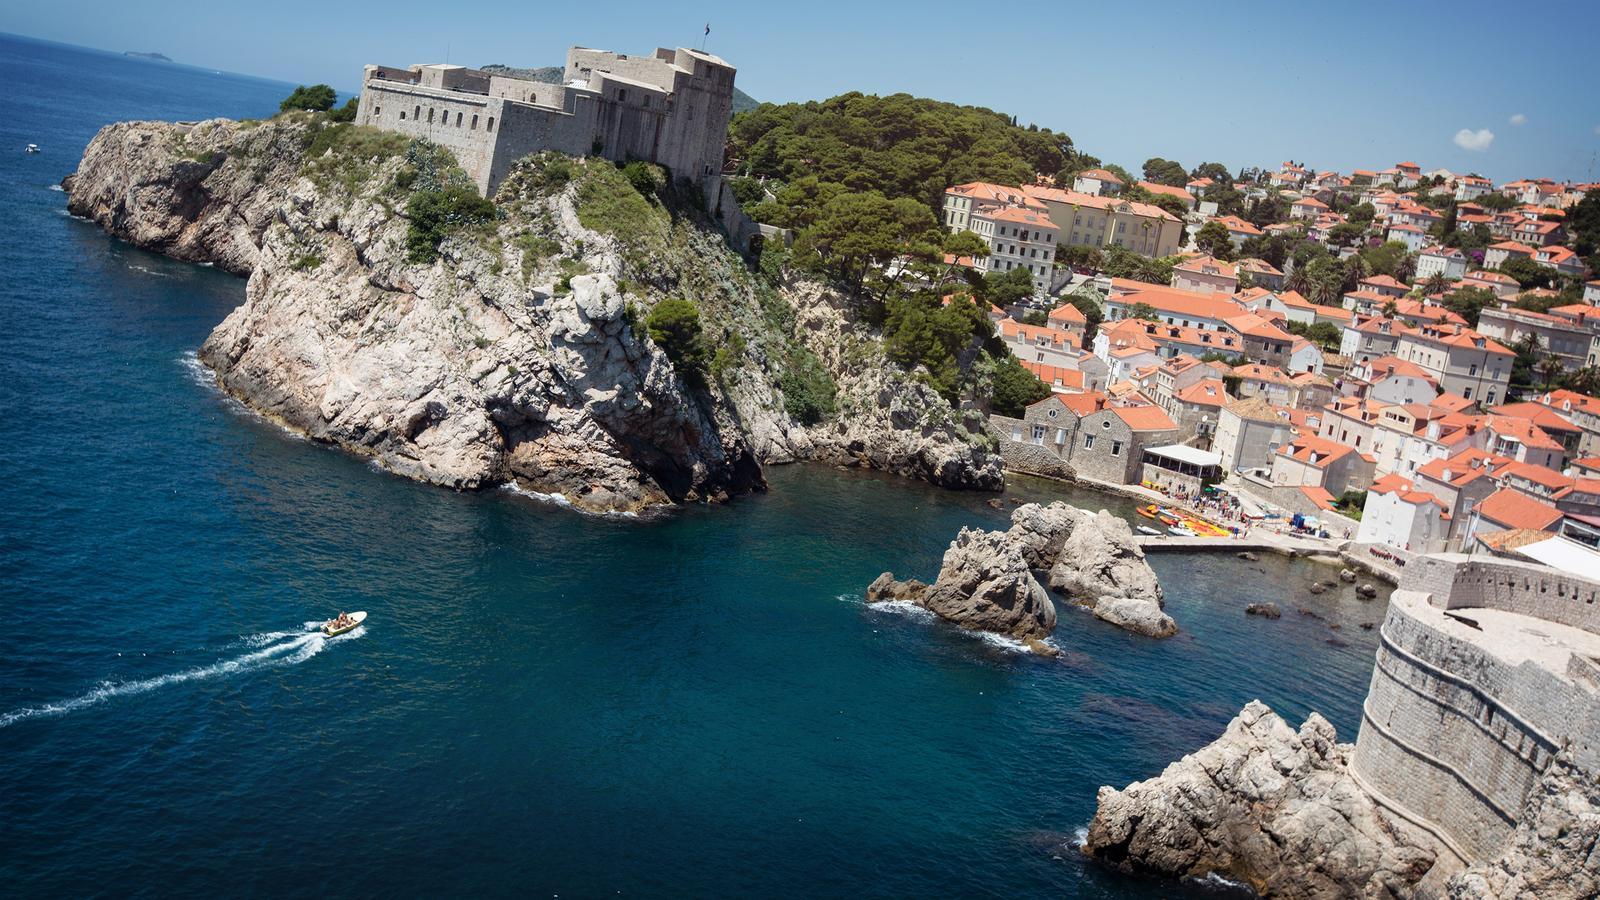 Aerial view of the magnificent city Dubrovnik, Croatia